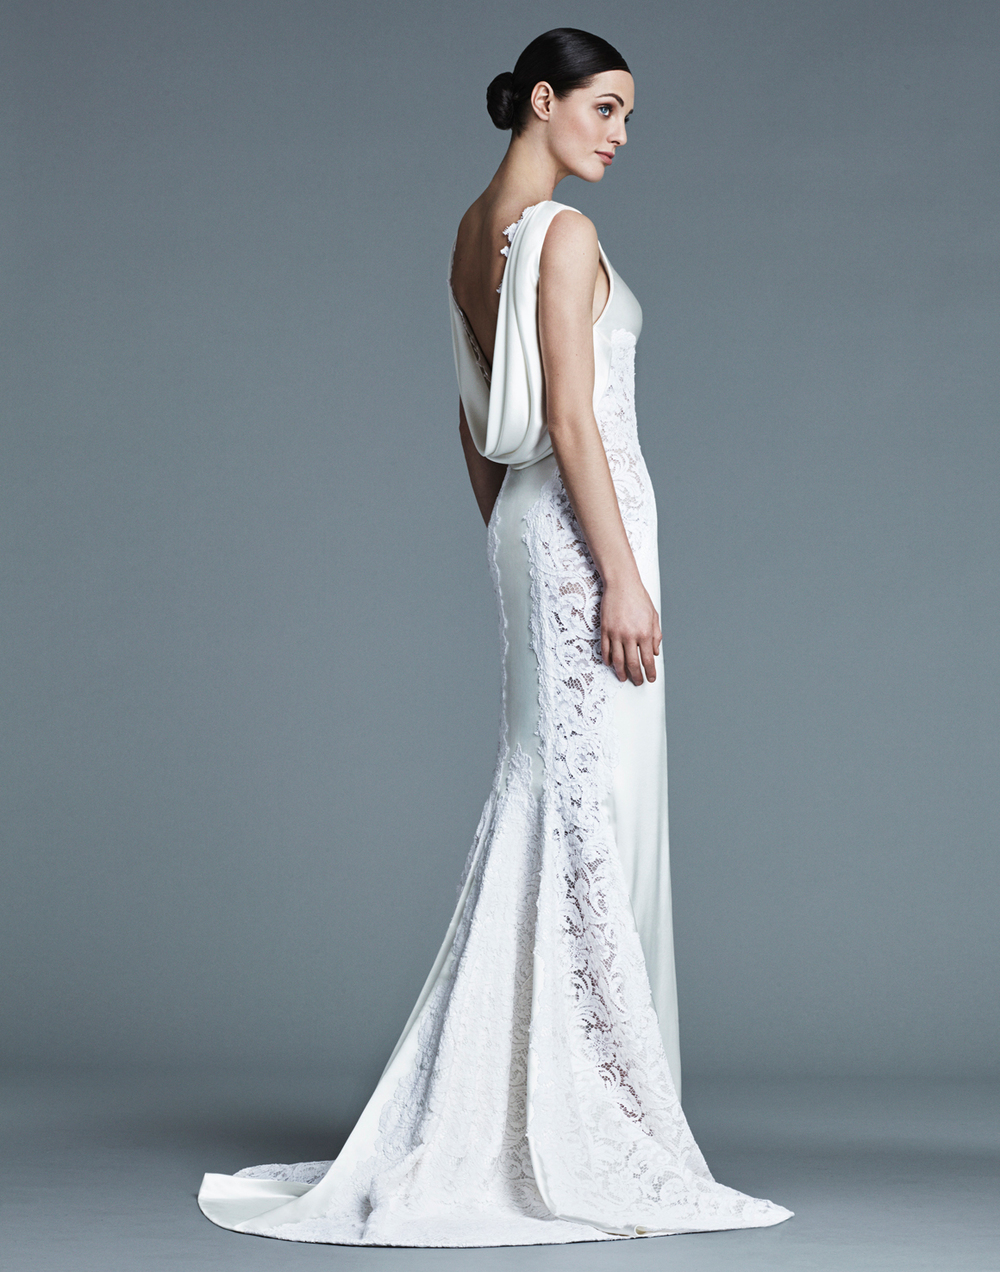 J. Mendel 2016 bridal collection | available at Little White Dress | Denver, Colorado